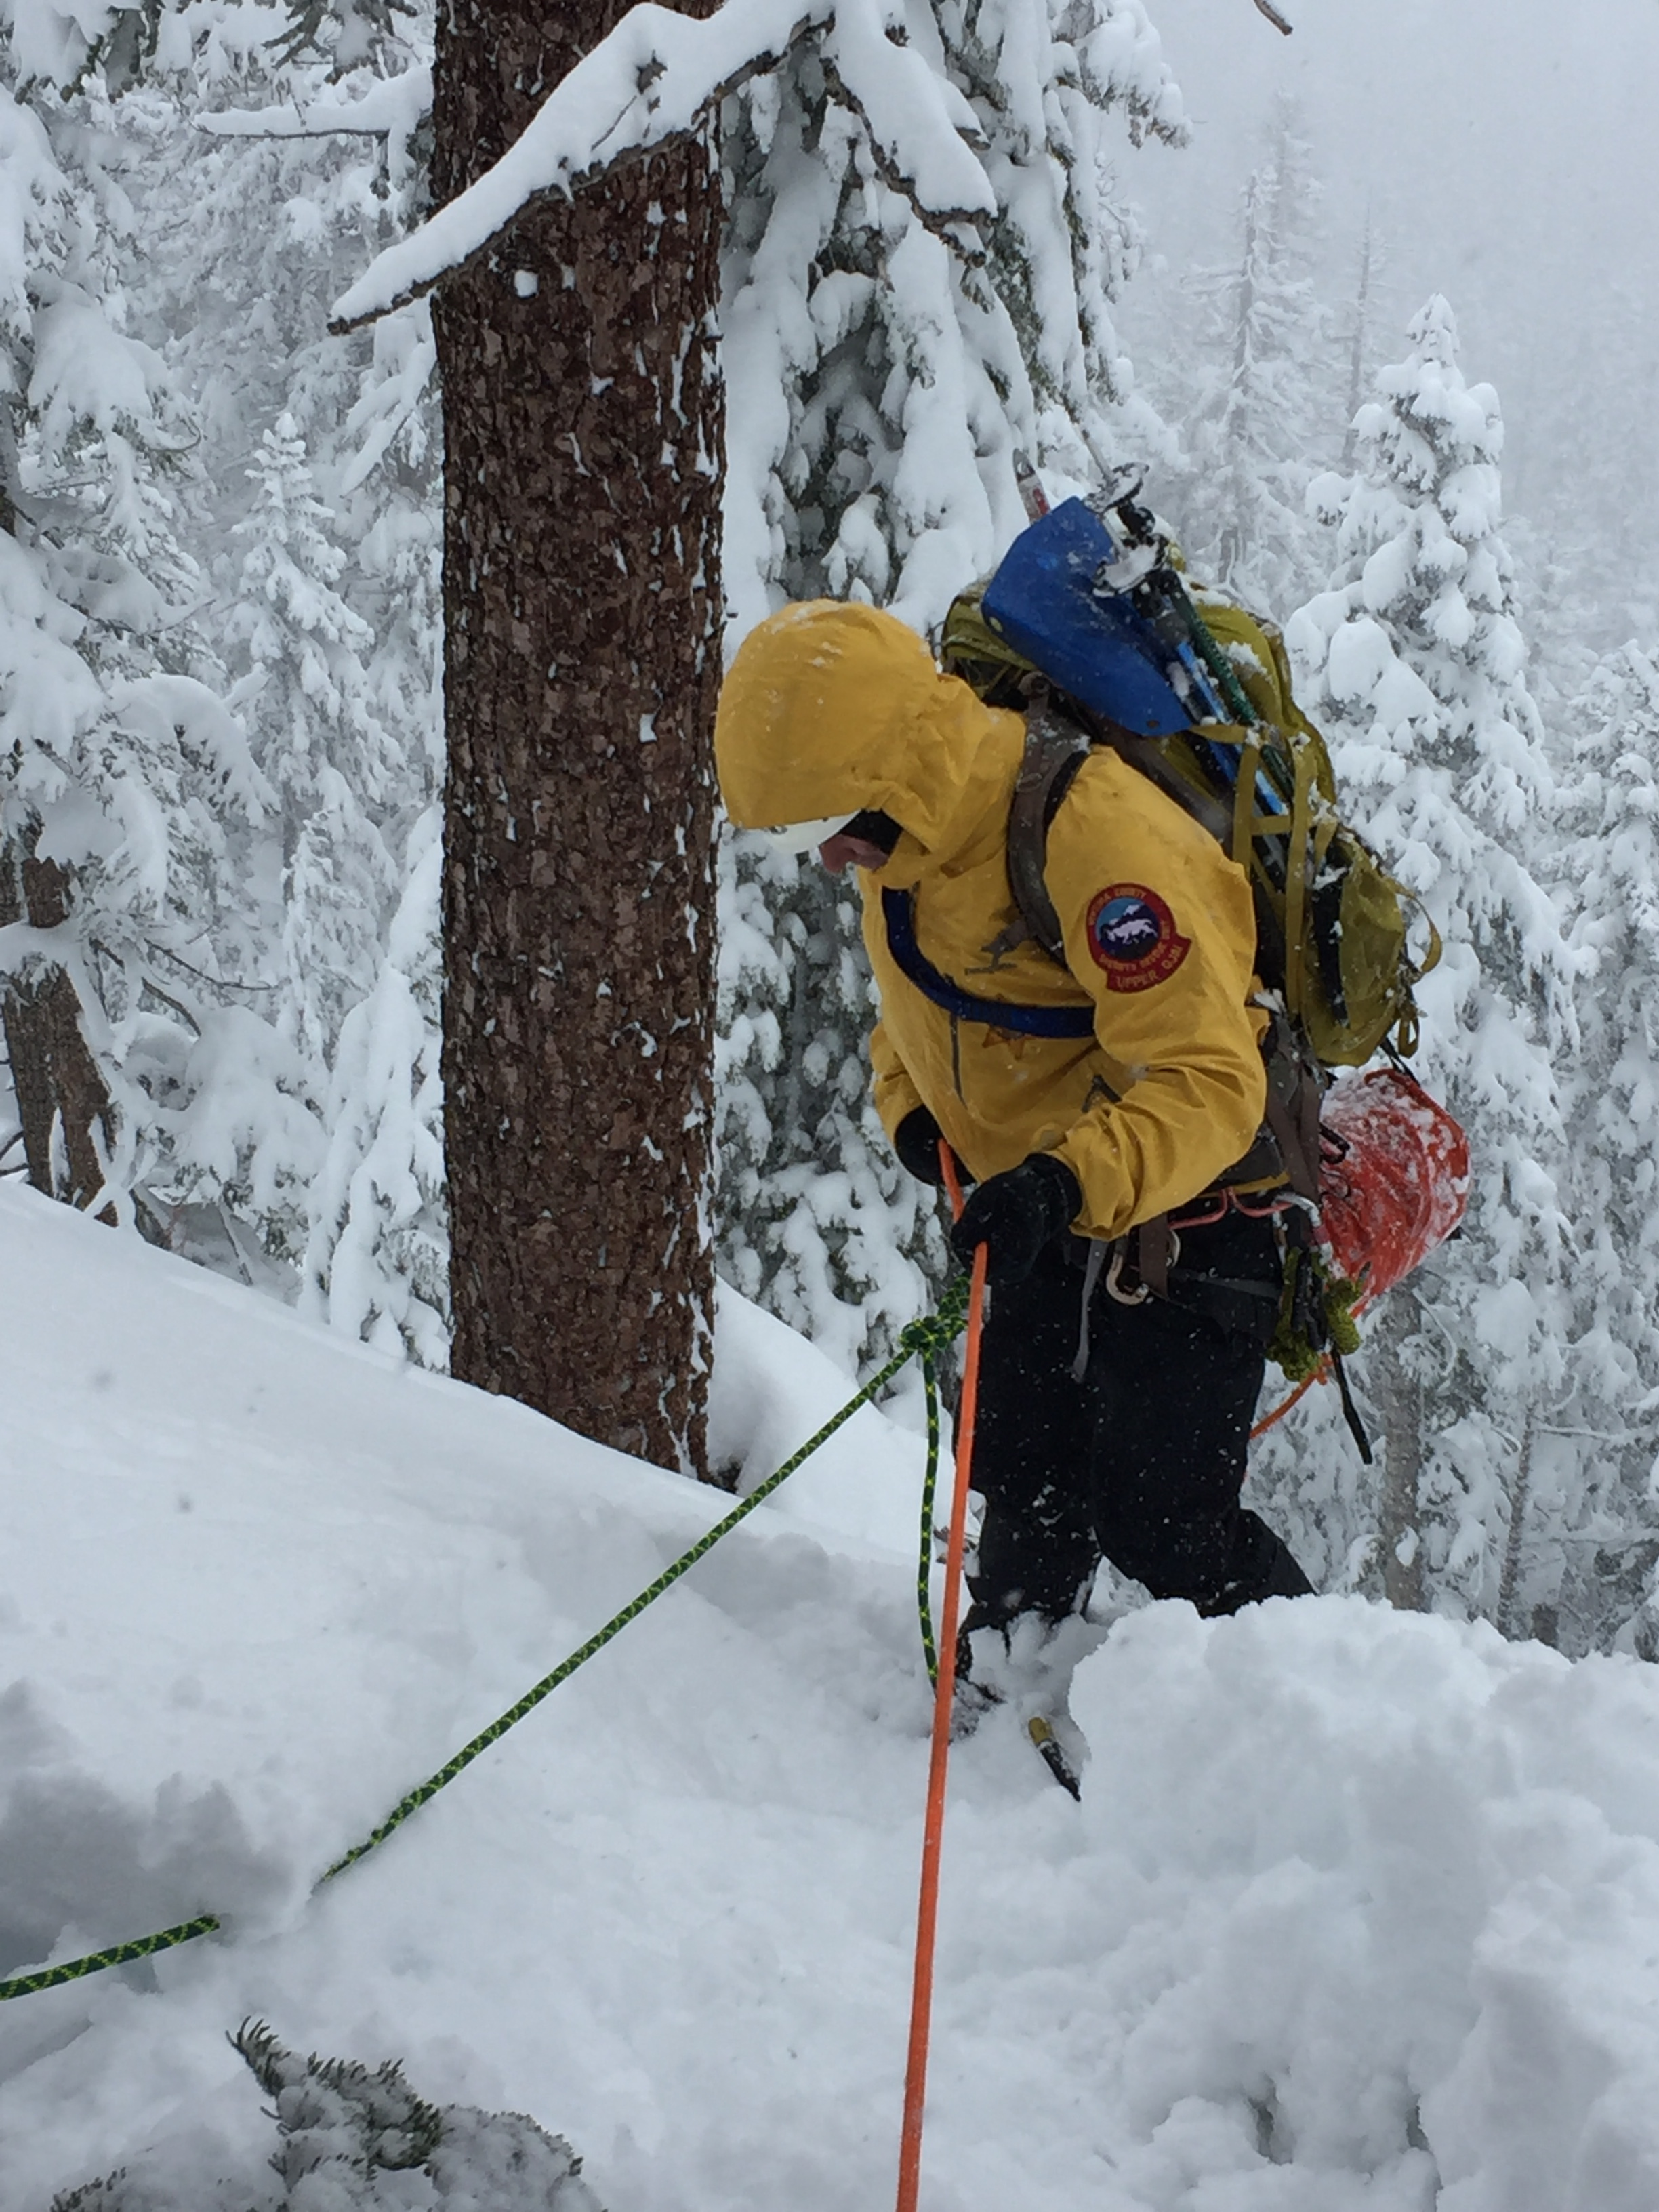 alpine Team - The Alpine Specialty Team is a group of dedicated members who excel in the world of snow, rock and ice. They are extremely adapted to operating in frigid snowy environments at high elevations. They are individuals who have received advanced training in navigation, avalanche dangers and winter survival skills. The special team leaders have completed the California Office of Emergency Services Search Management class for the Direction and Control of the Search Function Winter SAR course. Special gear the teams use are special dry dynamic ropes, avalanche beacons, avalanche probes, shoves, snow shoes, and crampons just to name a few specialty items. Each member has been issued special clothing for operating in the extreme cold and each member must carry a pack that will ensure their survival for 72 hours.